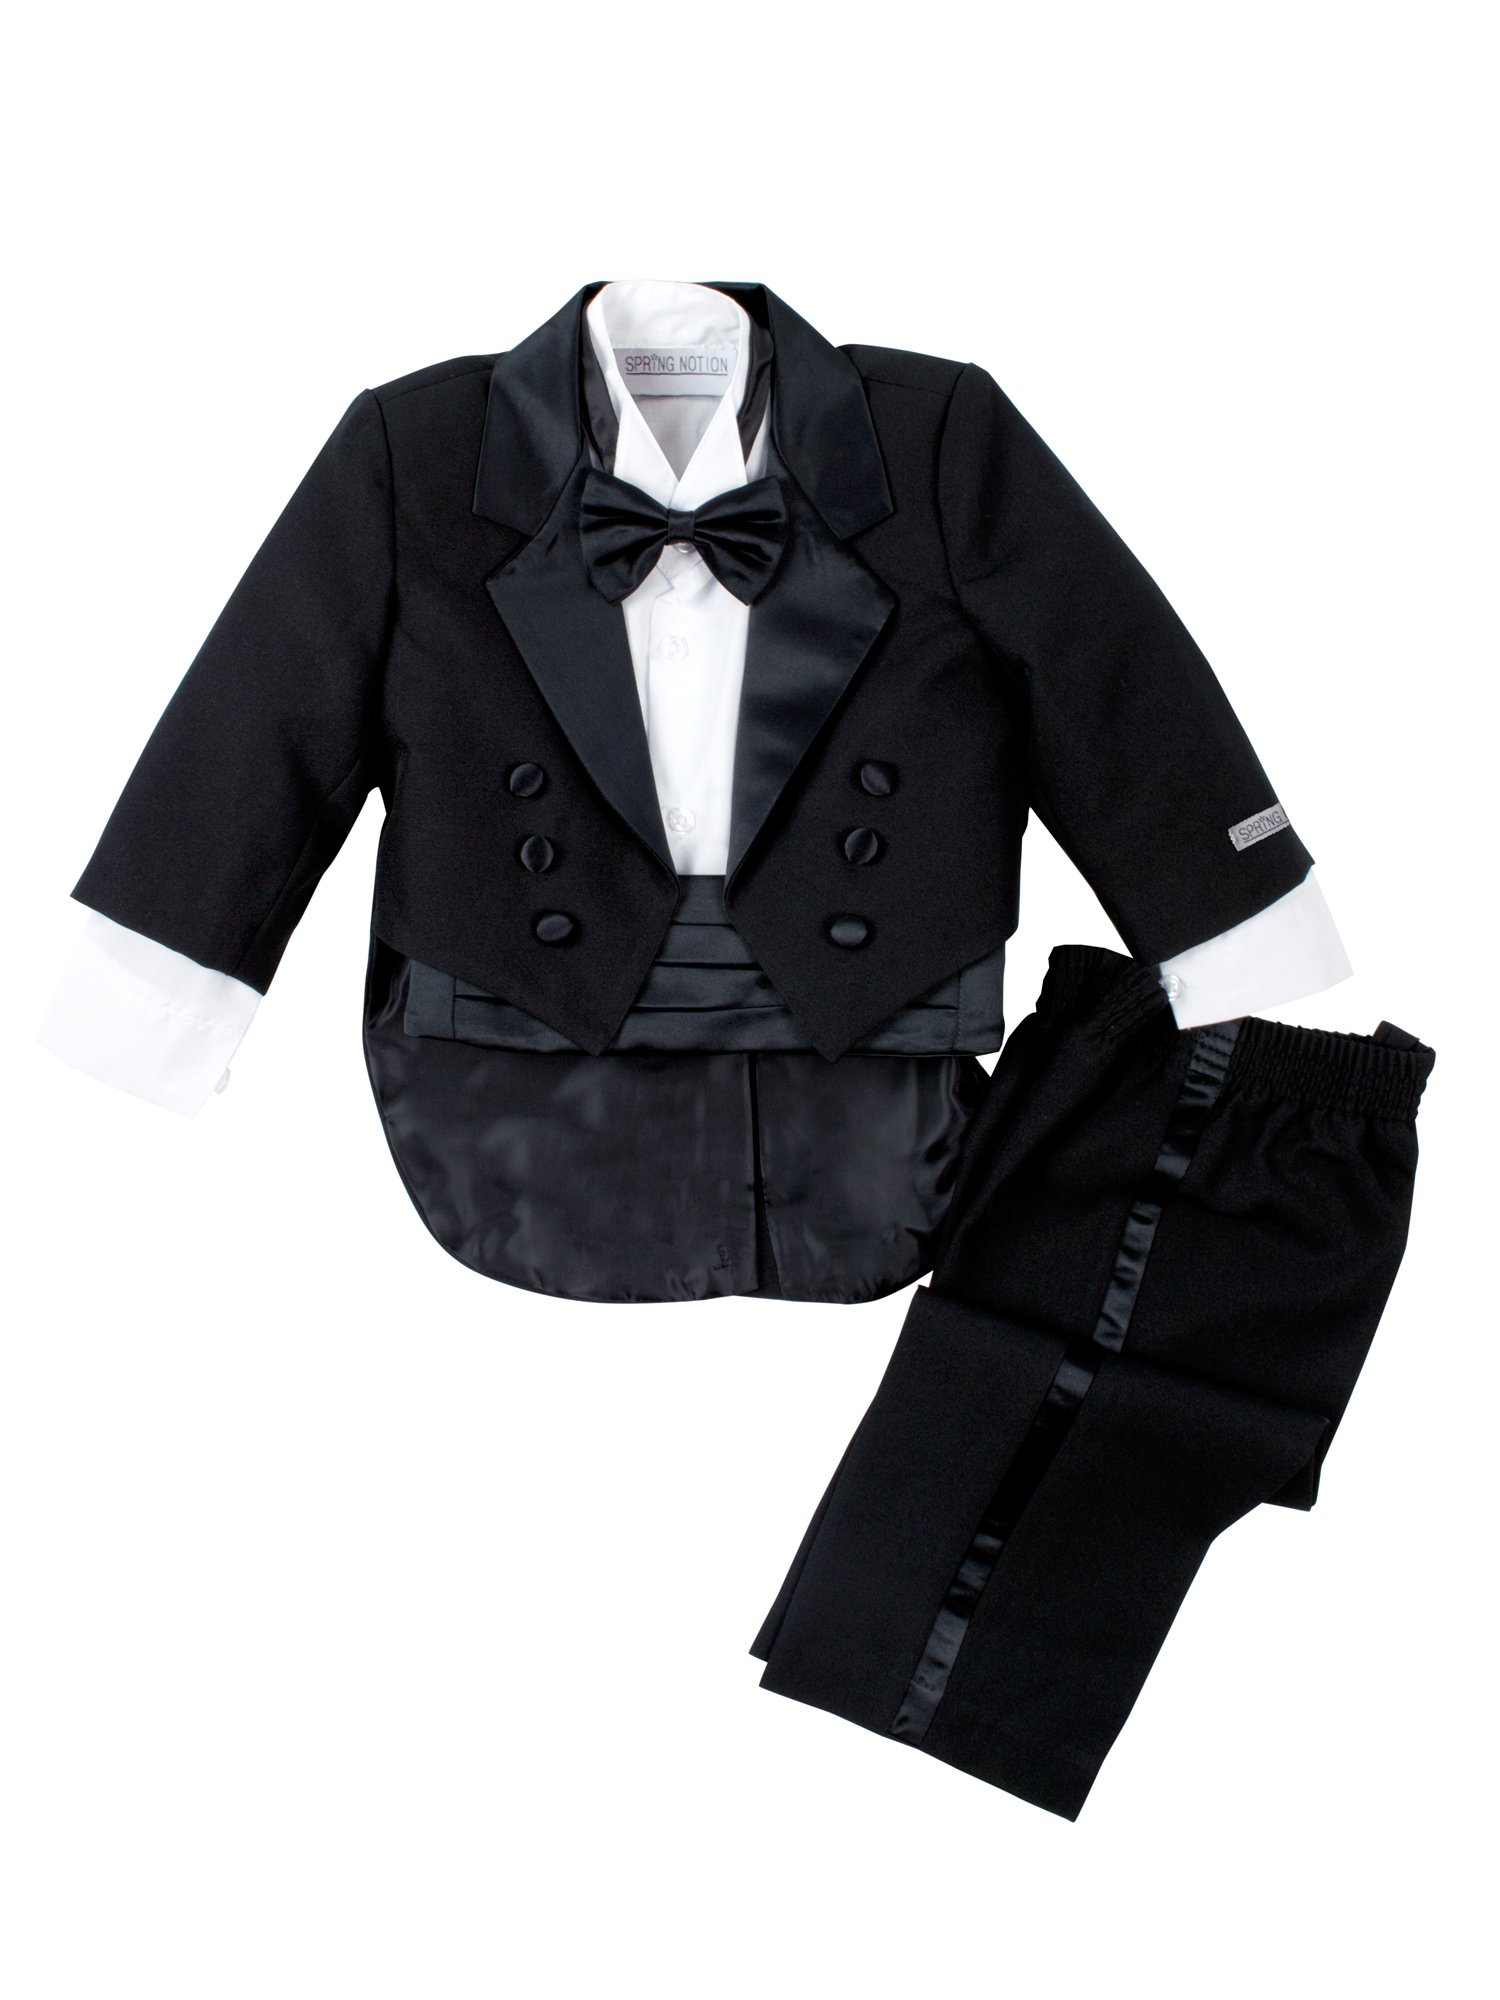 Spring Notion Baby Boys' Black Classic Tuxedo with Tail Medium/6-12 Months by Spring Notion